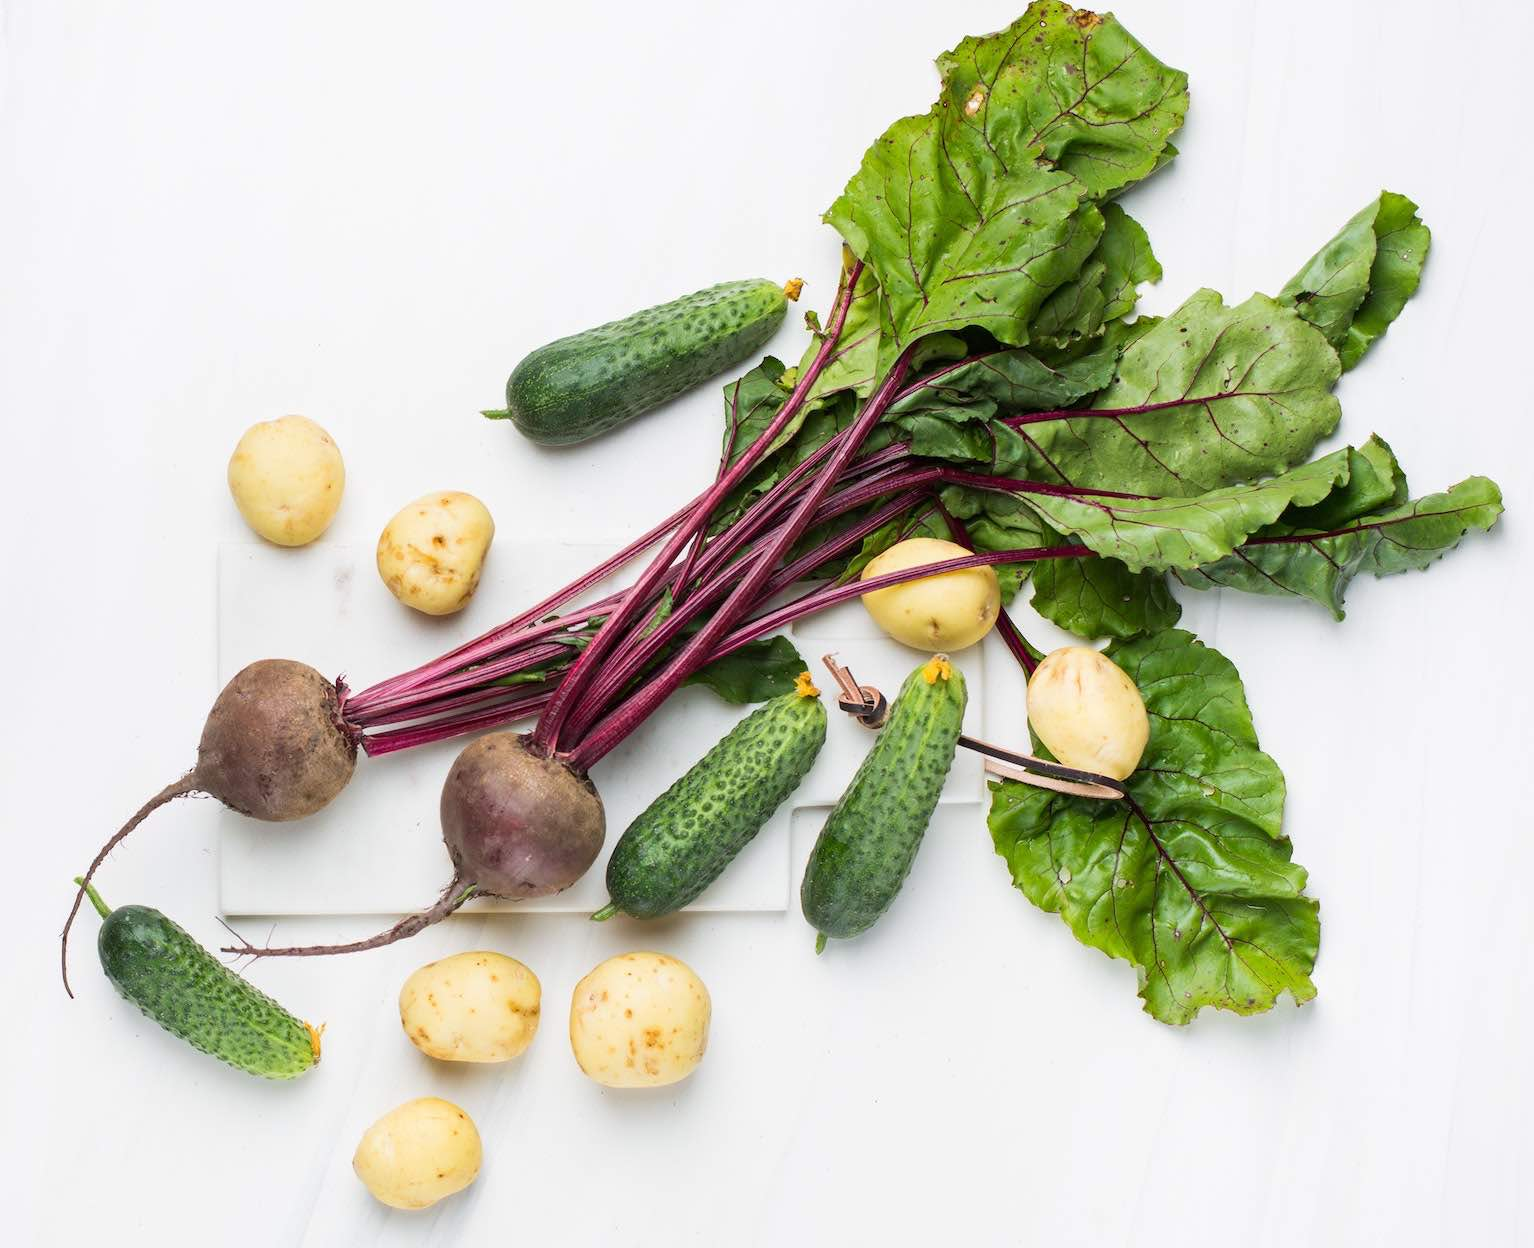 Assortment of beets, potatoes and cucumbers